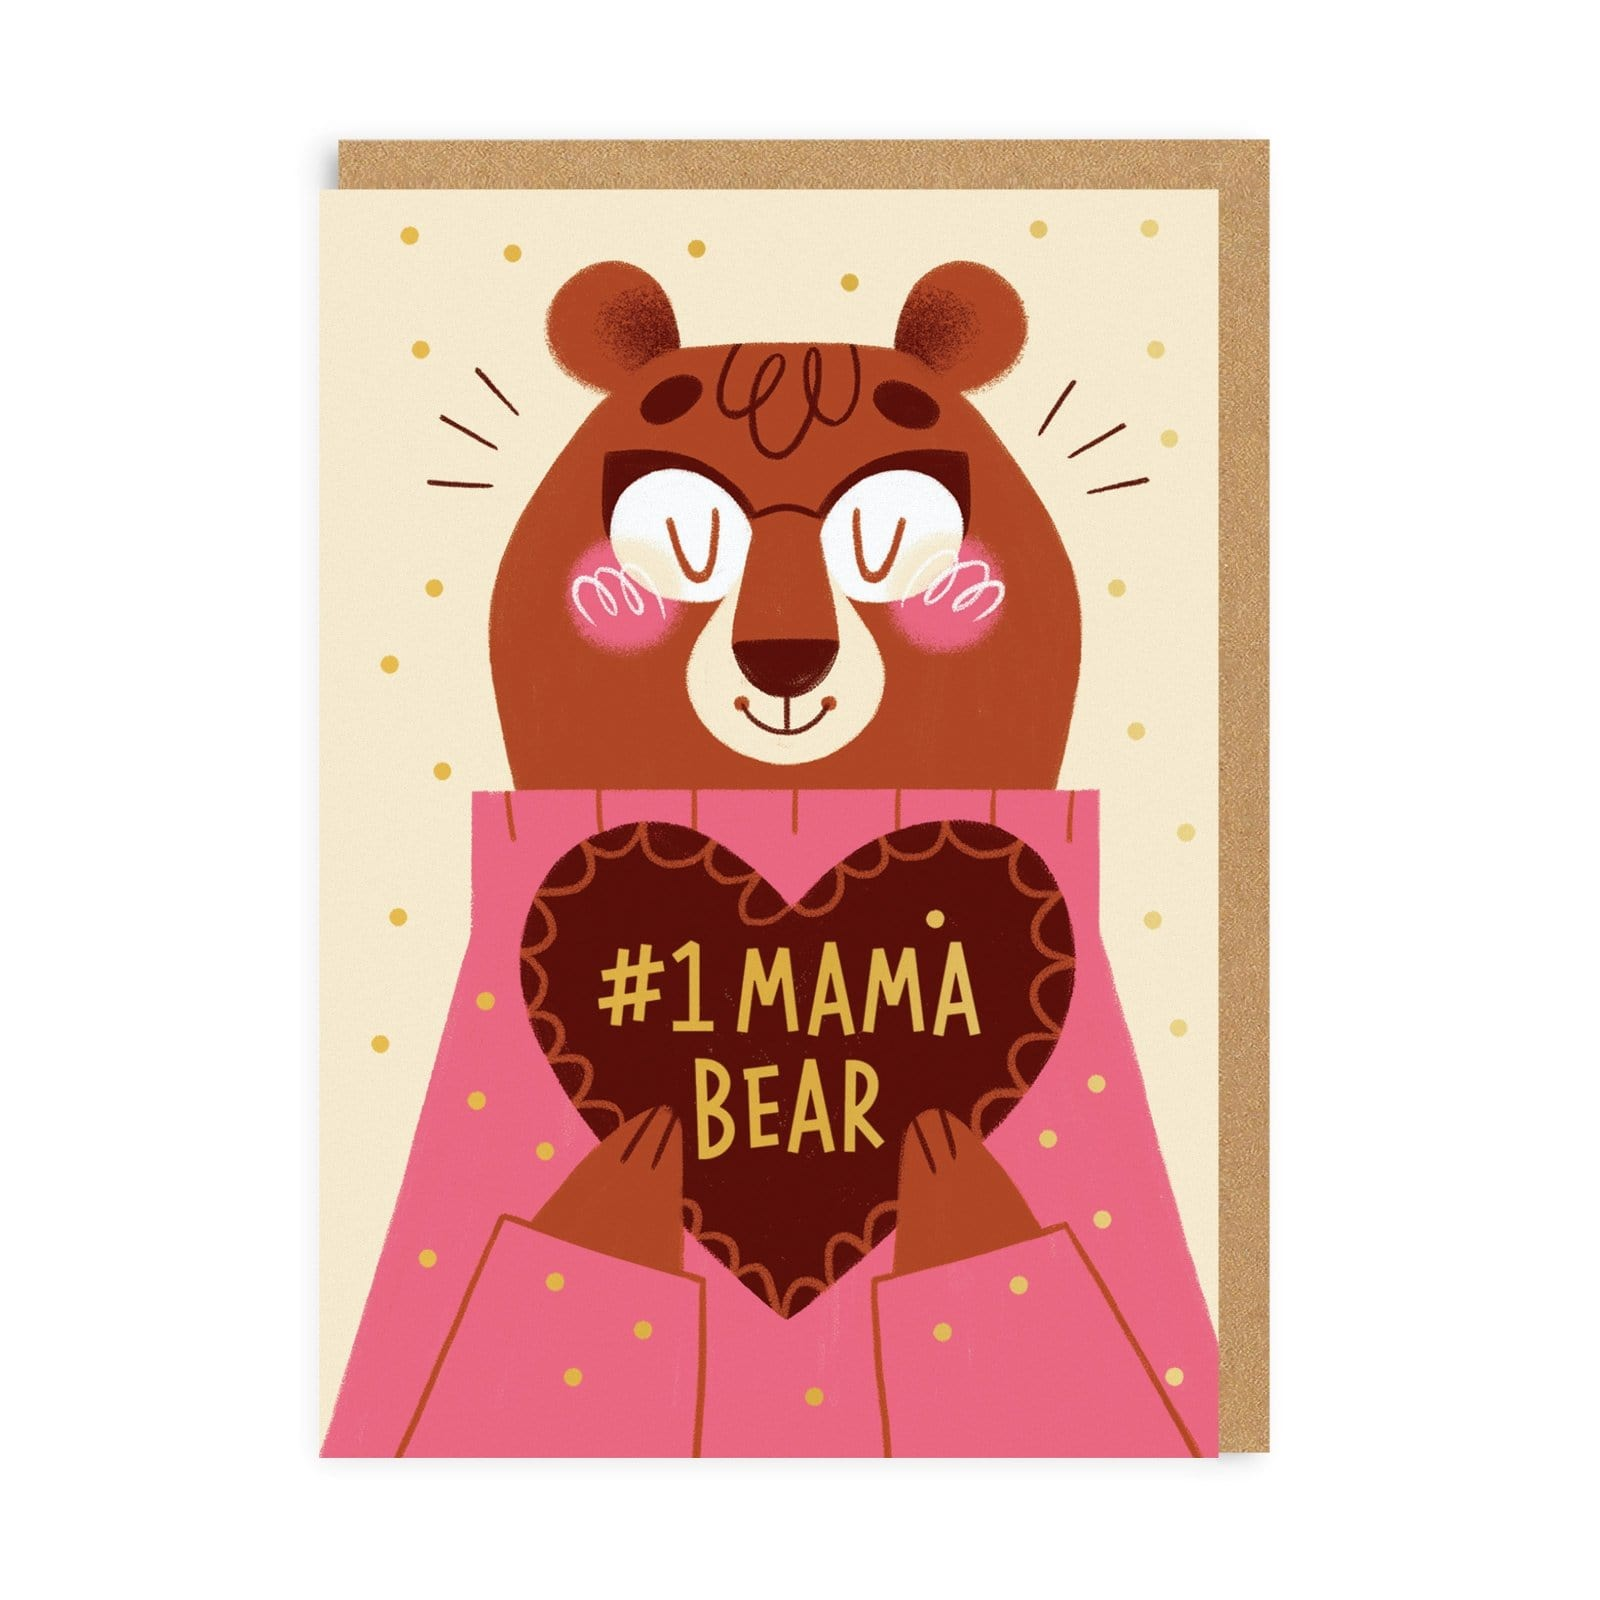 Mum Number 1 Mama Bear Greeting Card